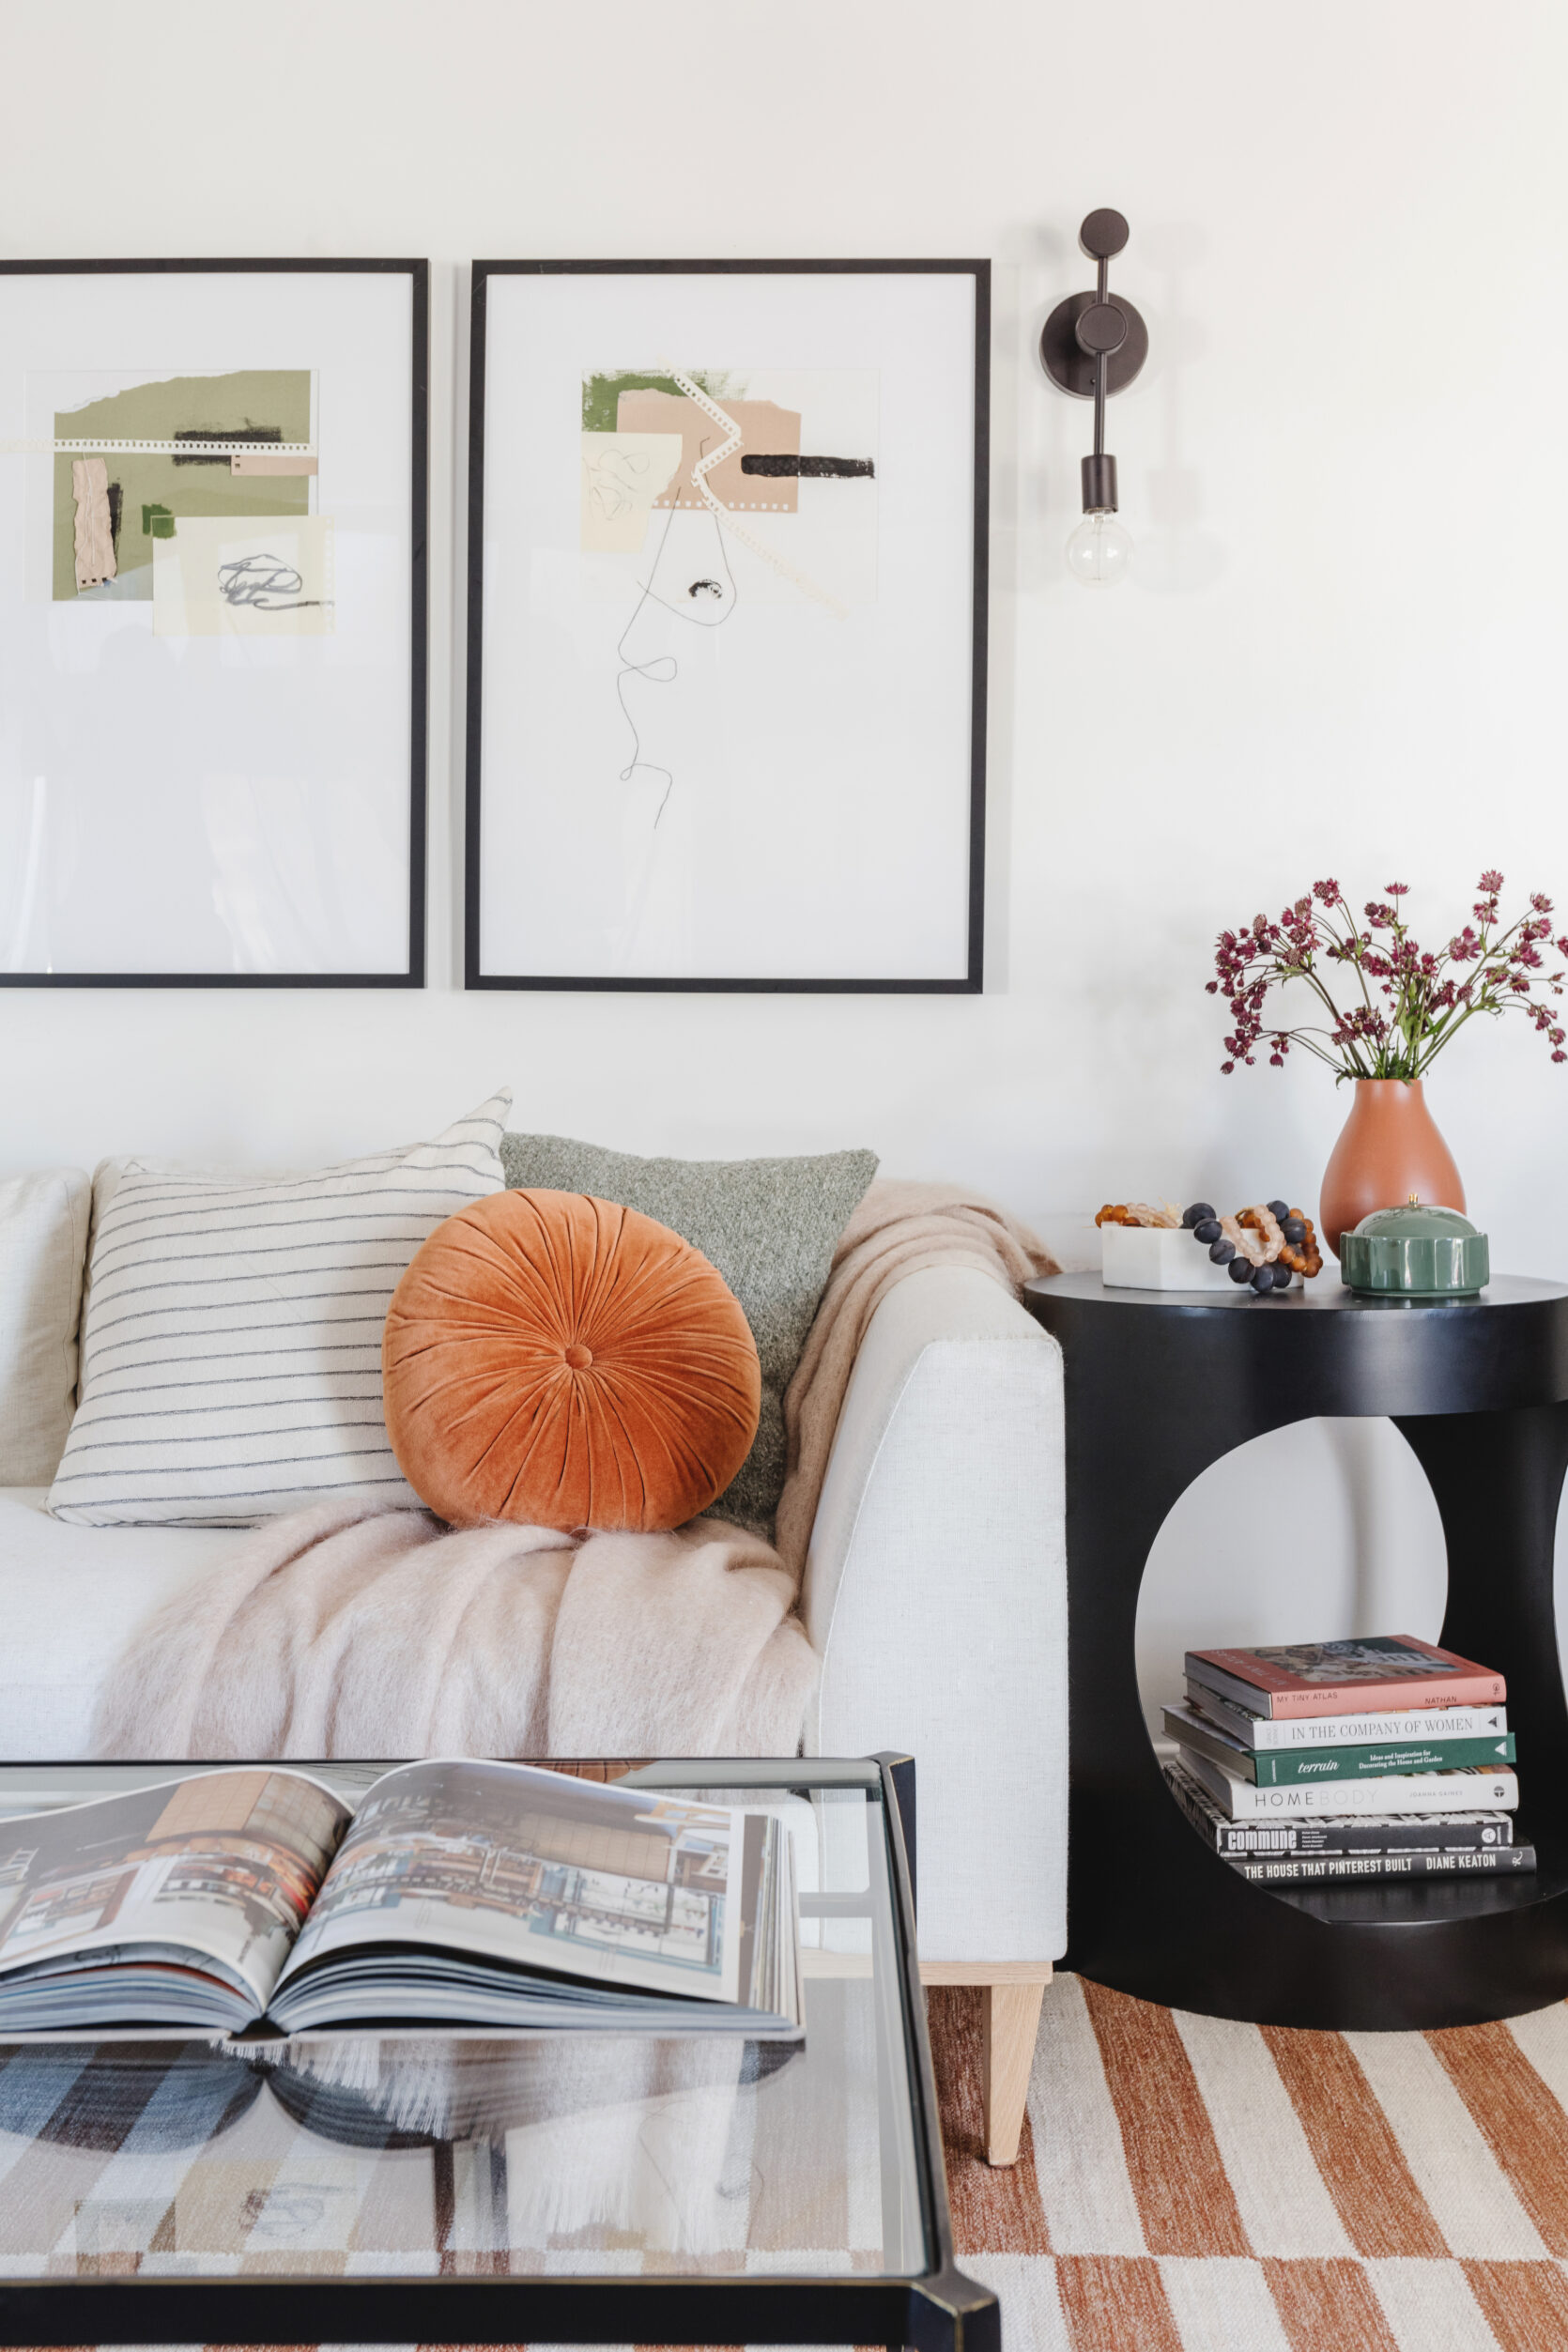 All Your Living Room Styling Questions Answered (Plus Some Furniture &Amp; Decor Reviews)